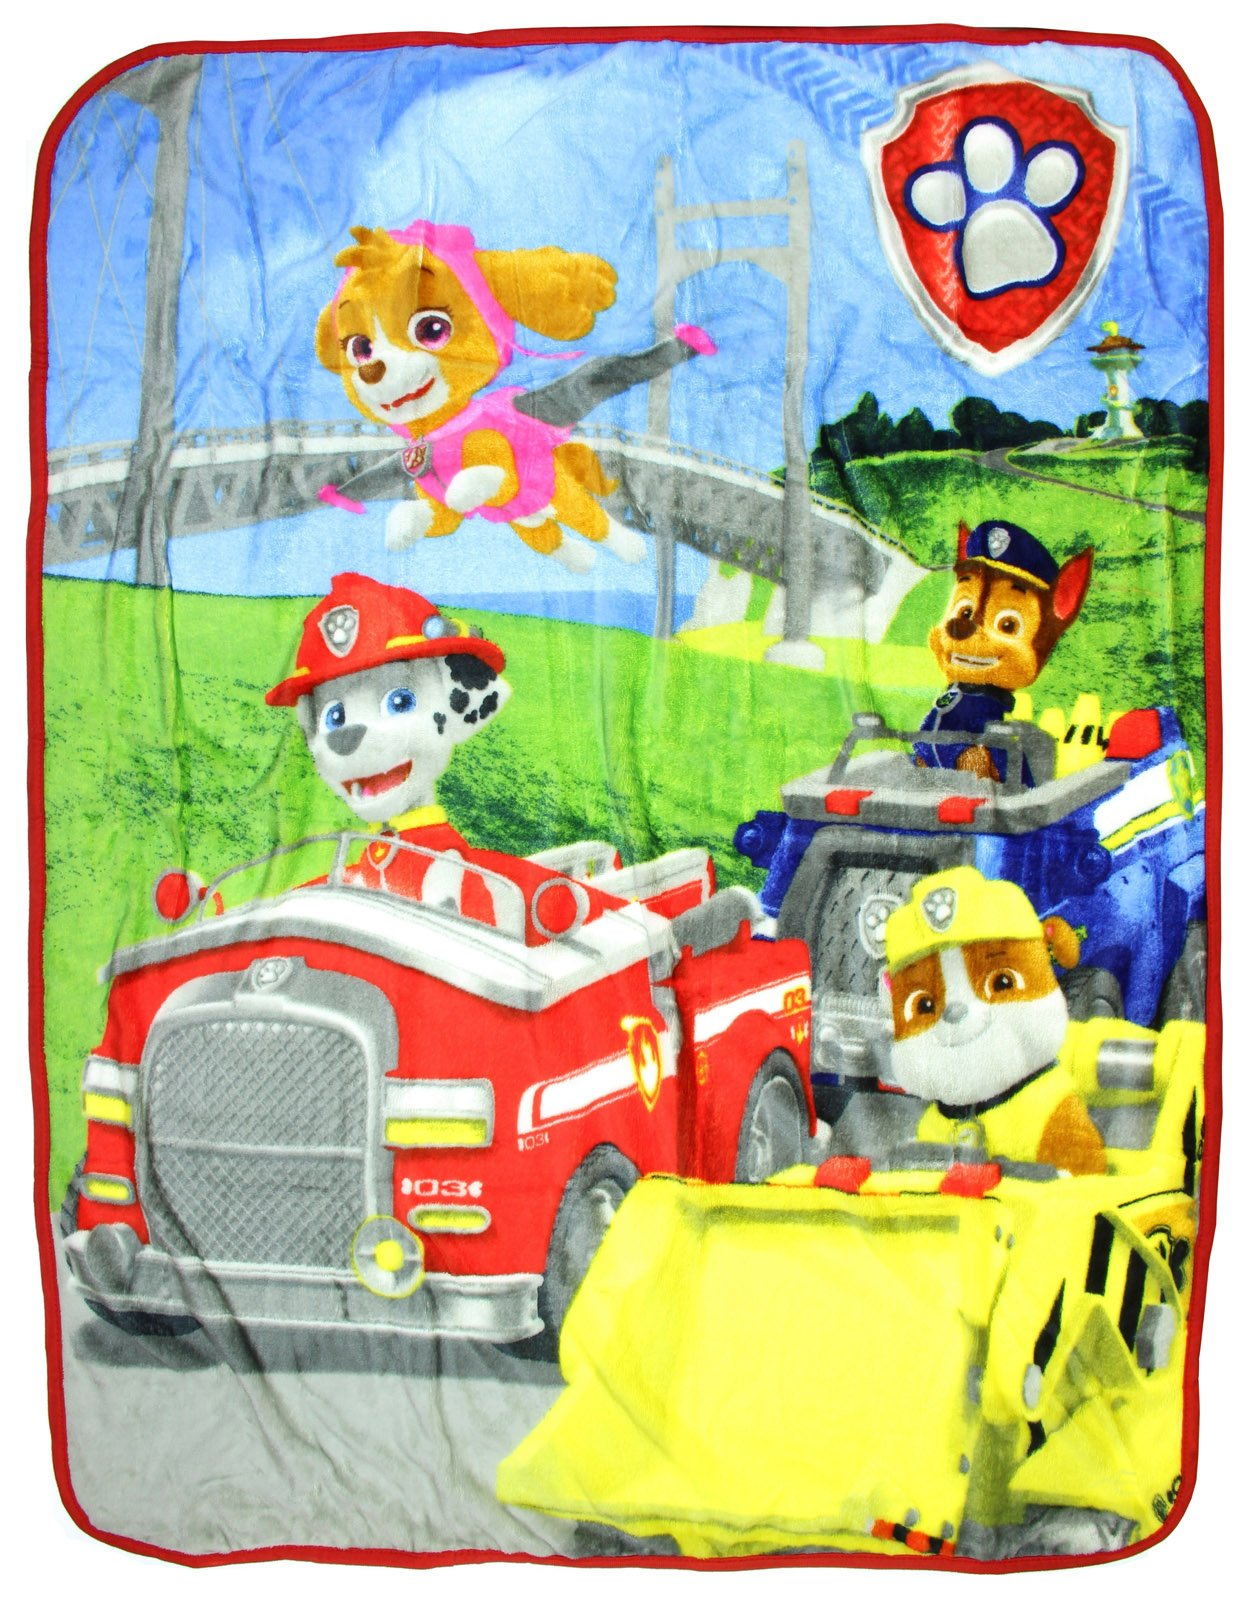 Paw Patrol All Paws on Deck Silky Soft Throw